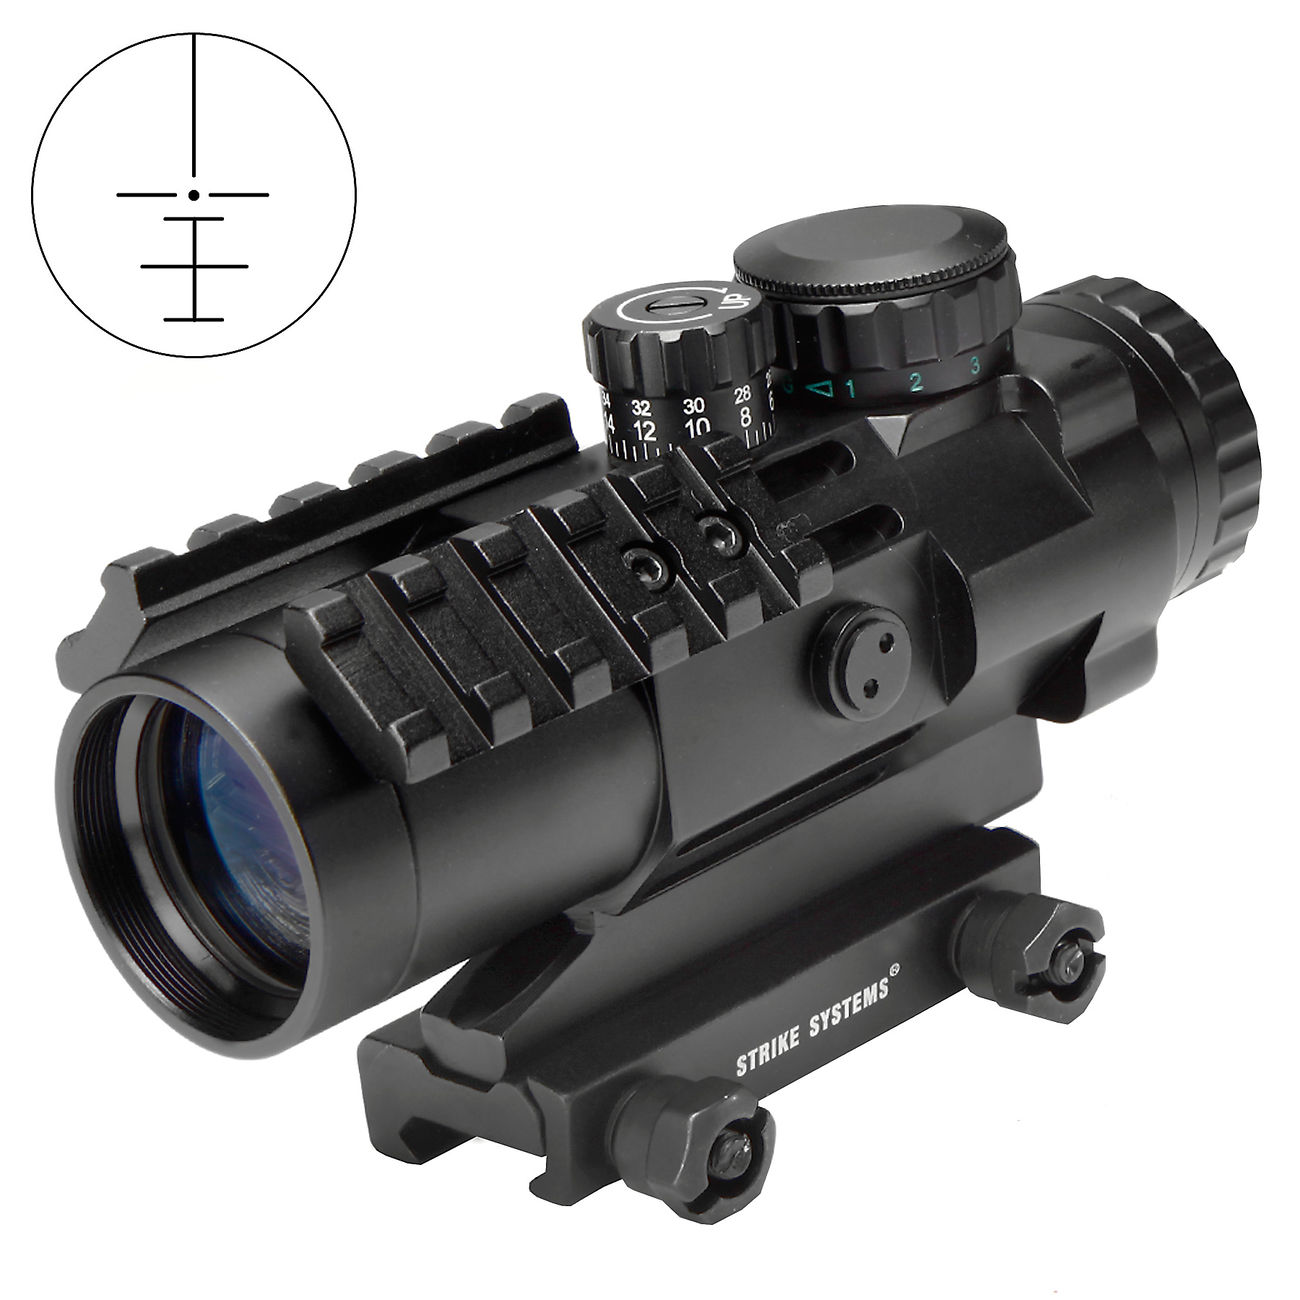 Strike Systems Tactical Red-/Green-Dot Scope mit Zusatzschienen 3x32mm schwarz 0